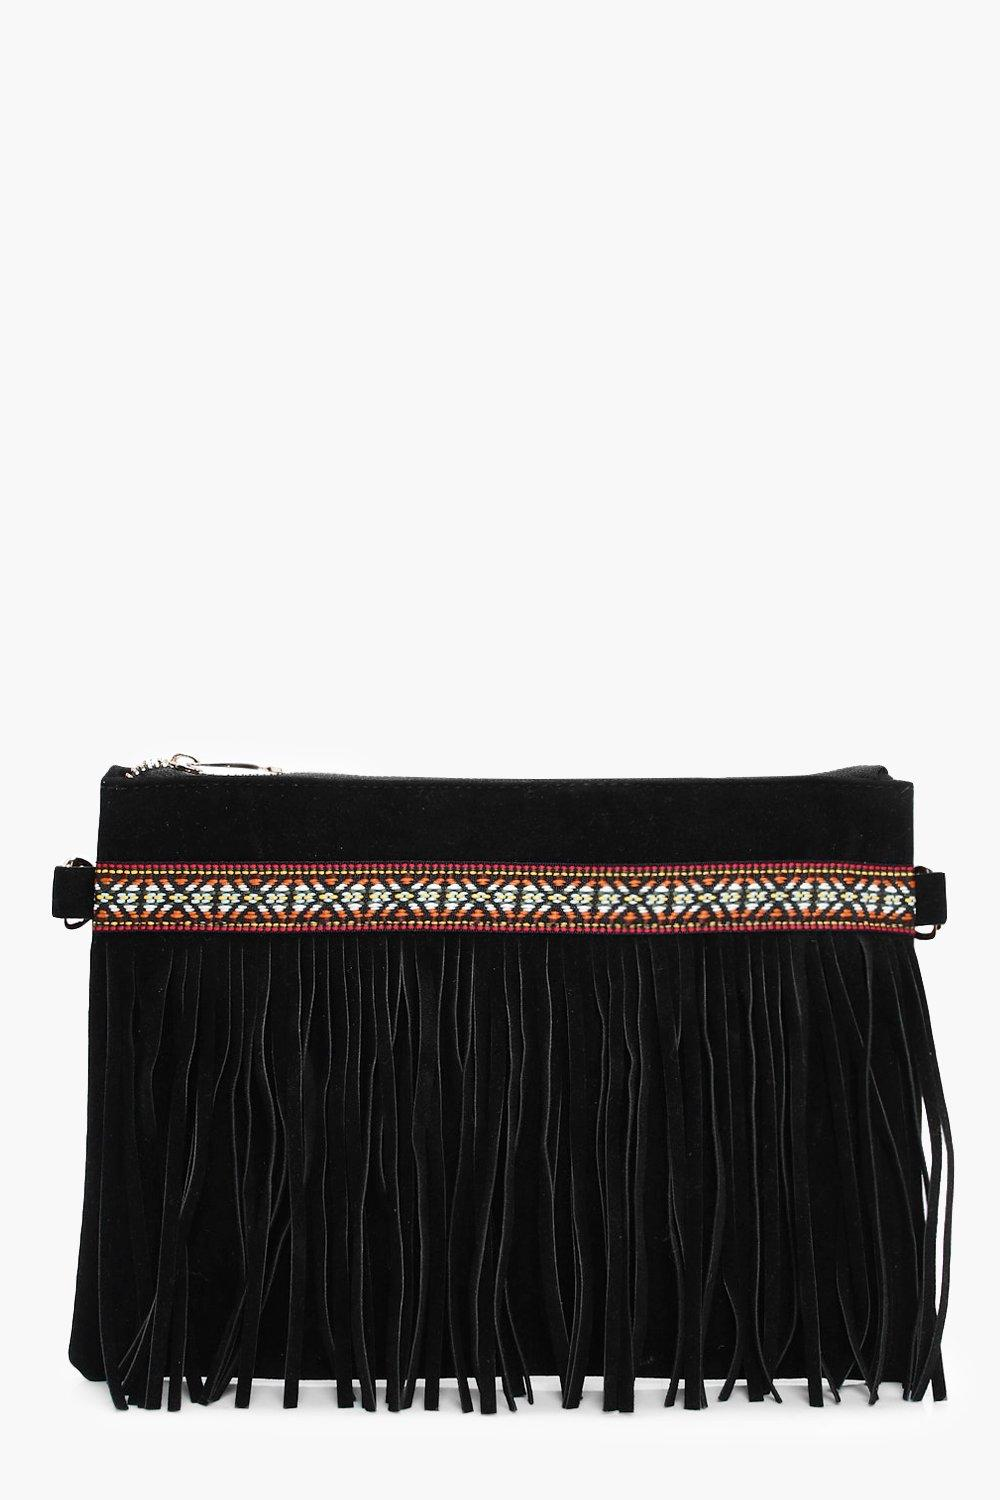 Aztec & Fringe Cross Body Bag - black - Macy Aztec